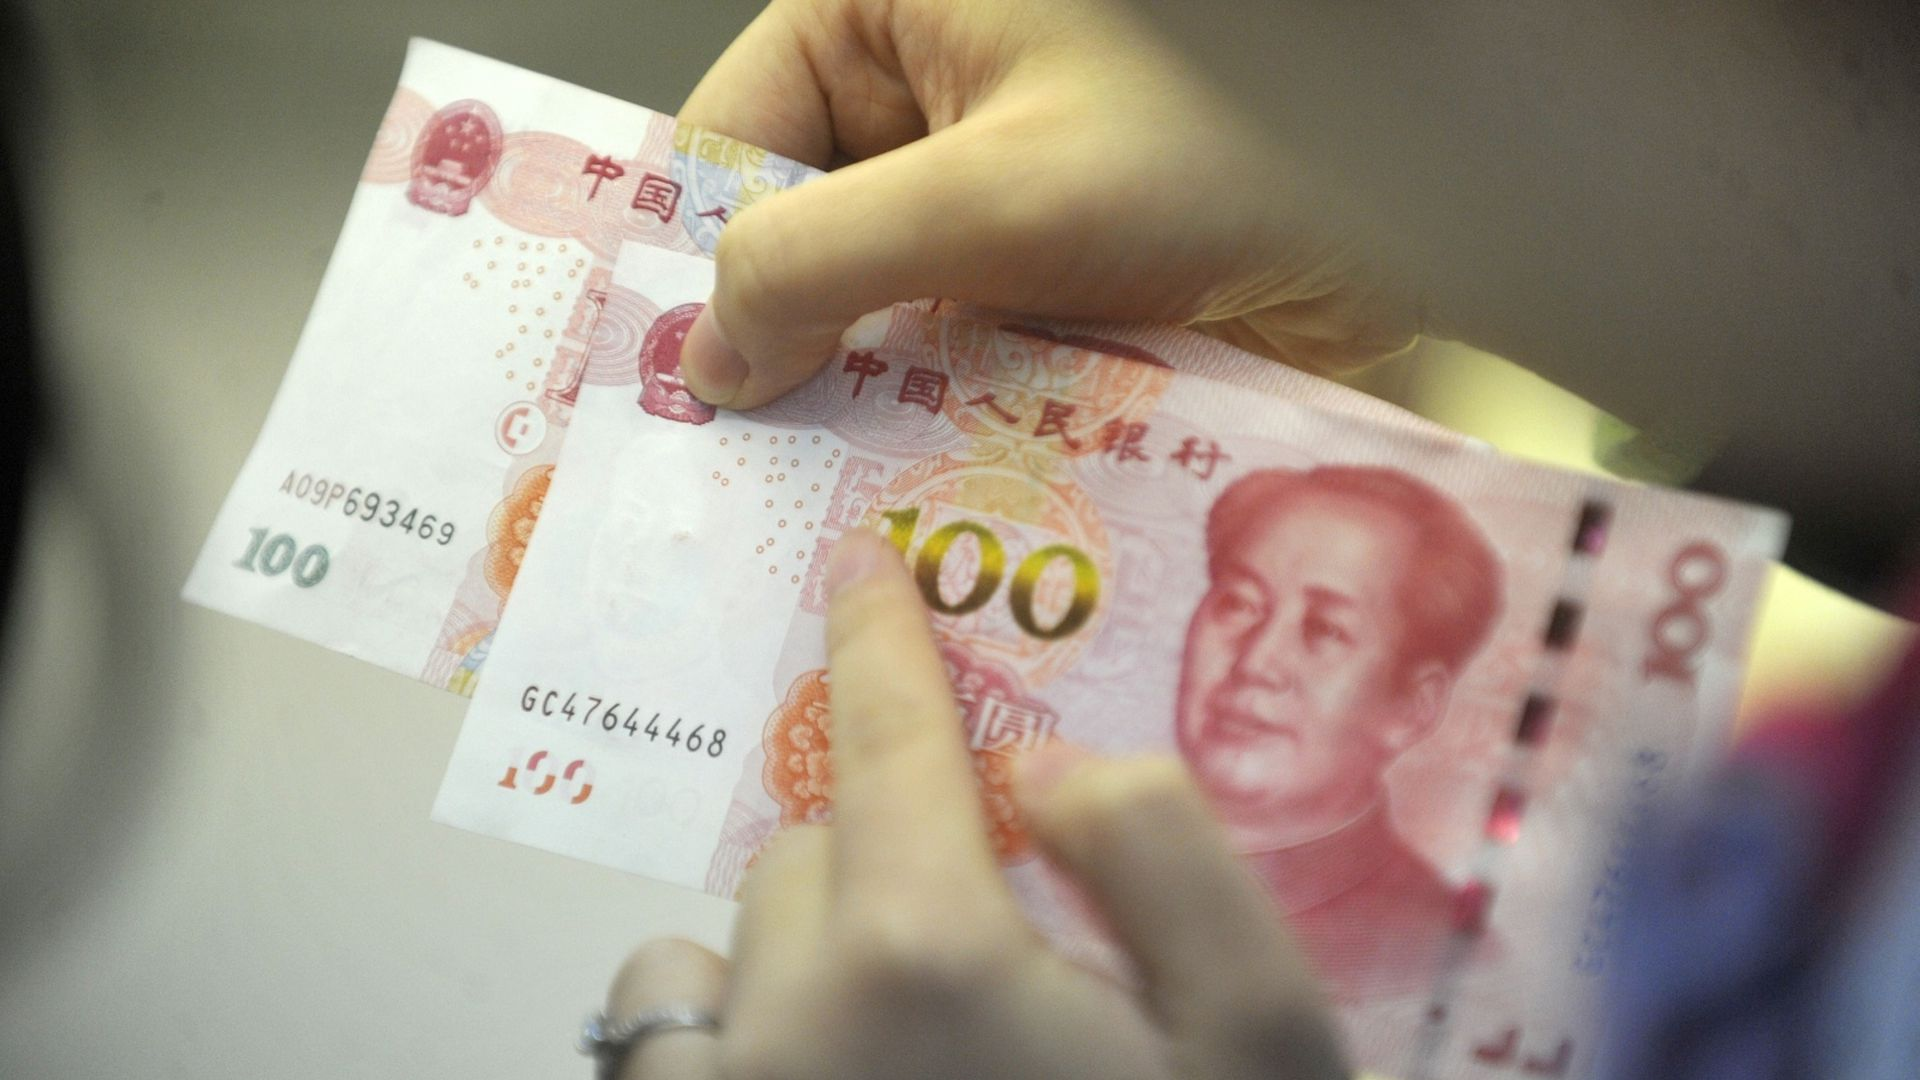 A person holds two 100 yuan notes